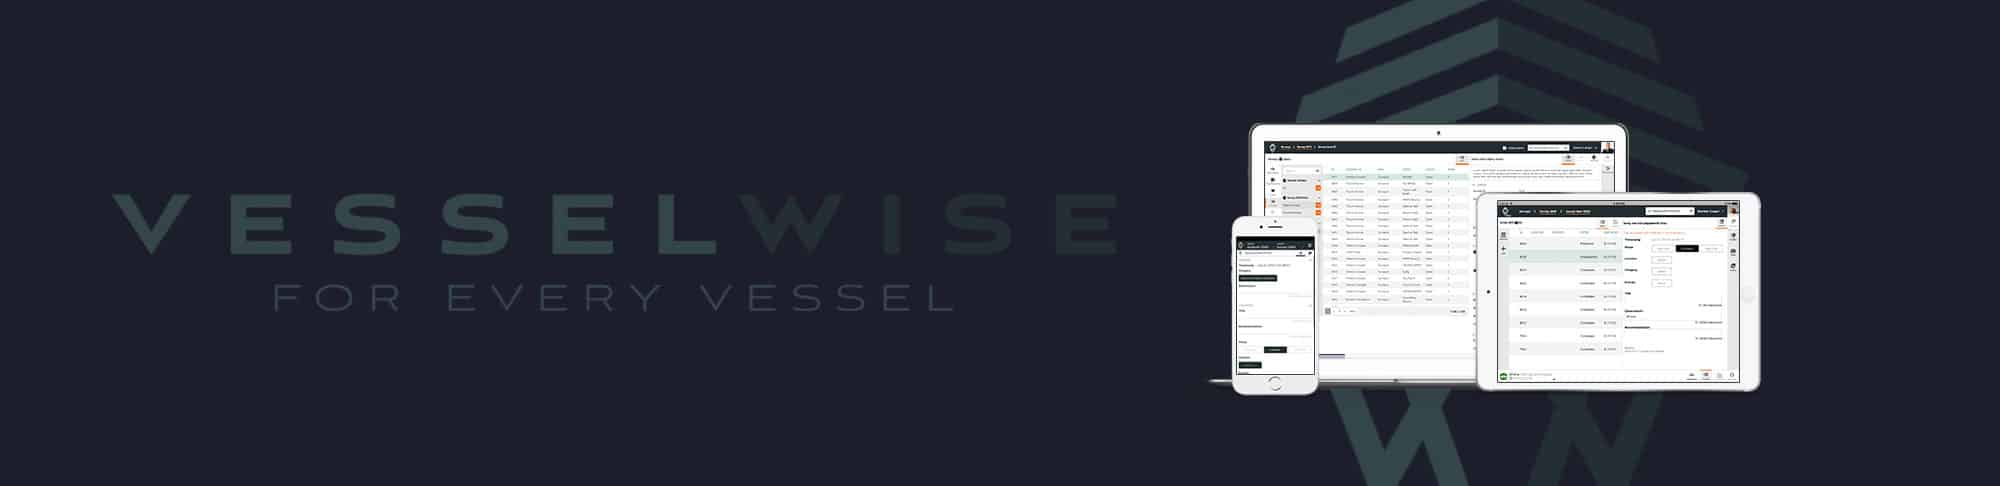 VesselWise Goes Live